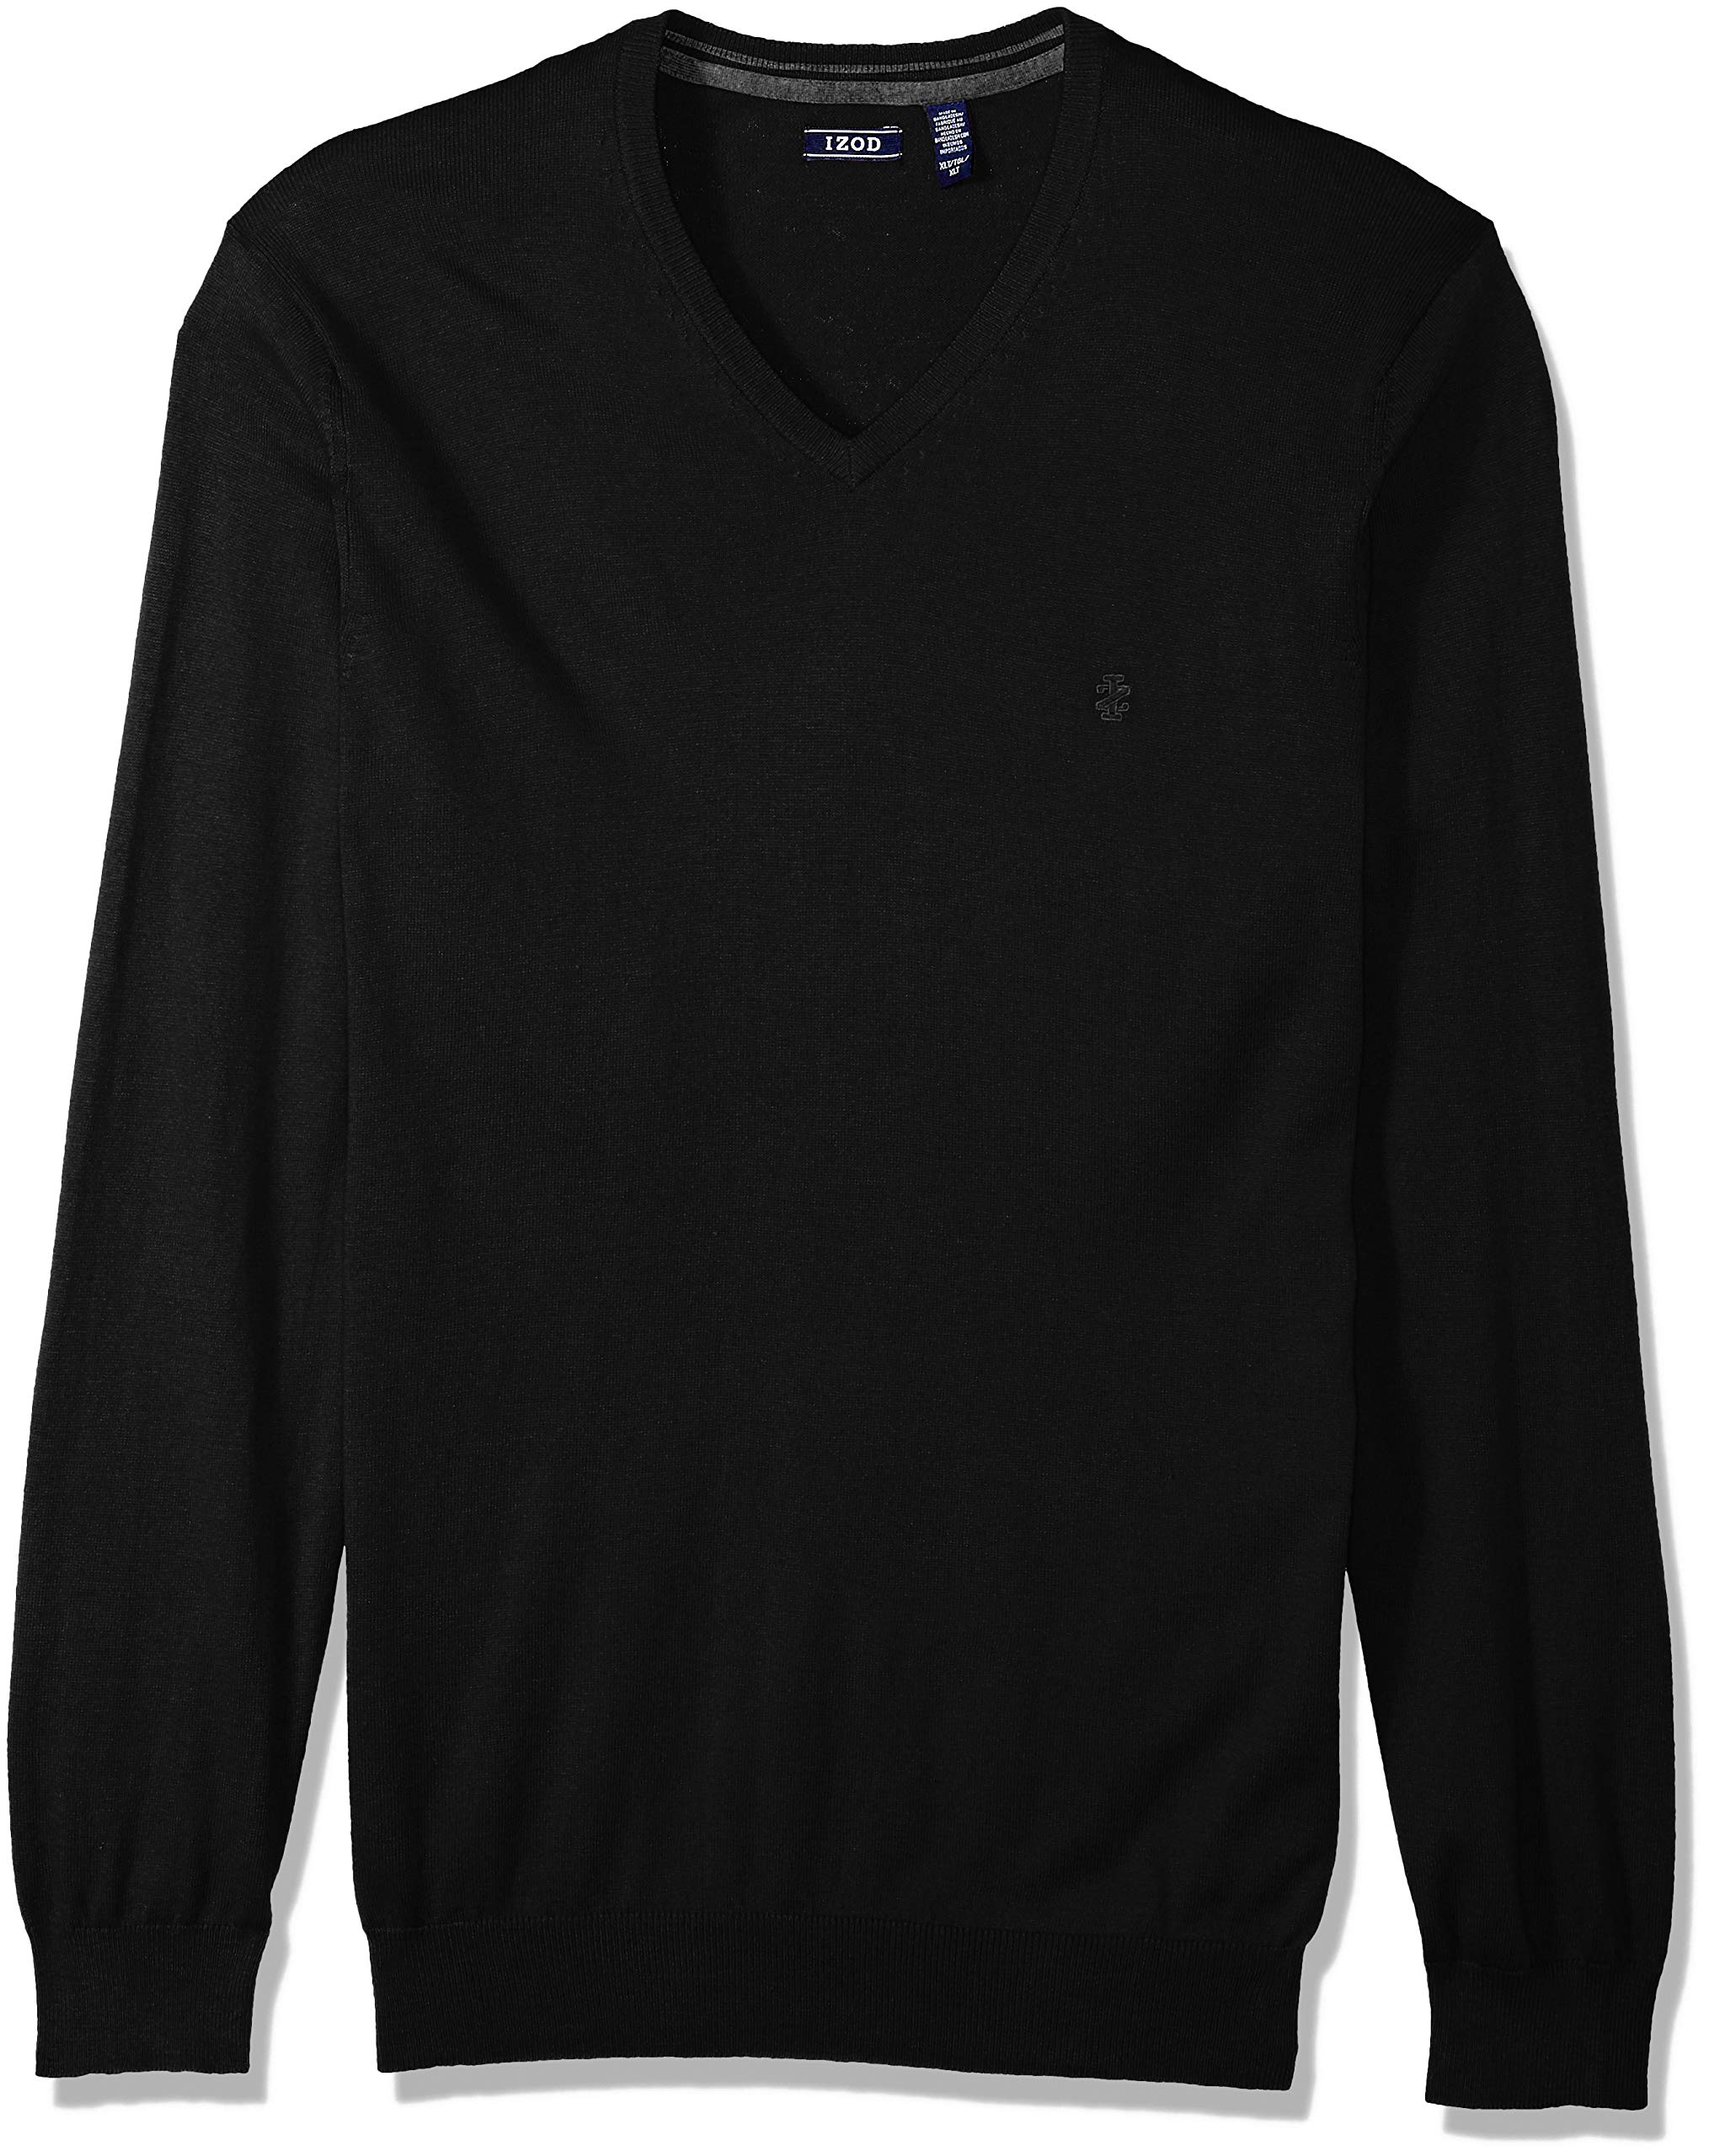 IZOD Men's Big and Tall Premium Essentials Solid V-Neck 12 Gauge Sweater, Black, X-Large